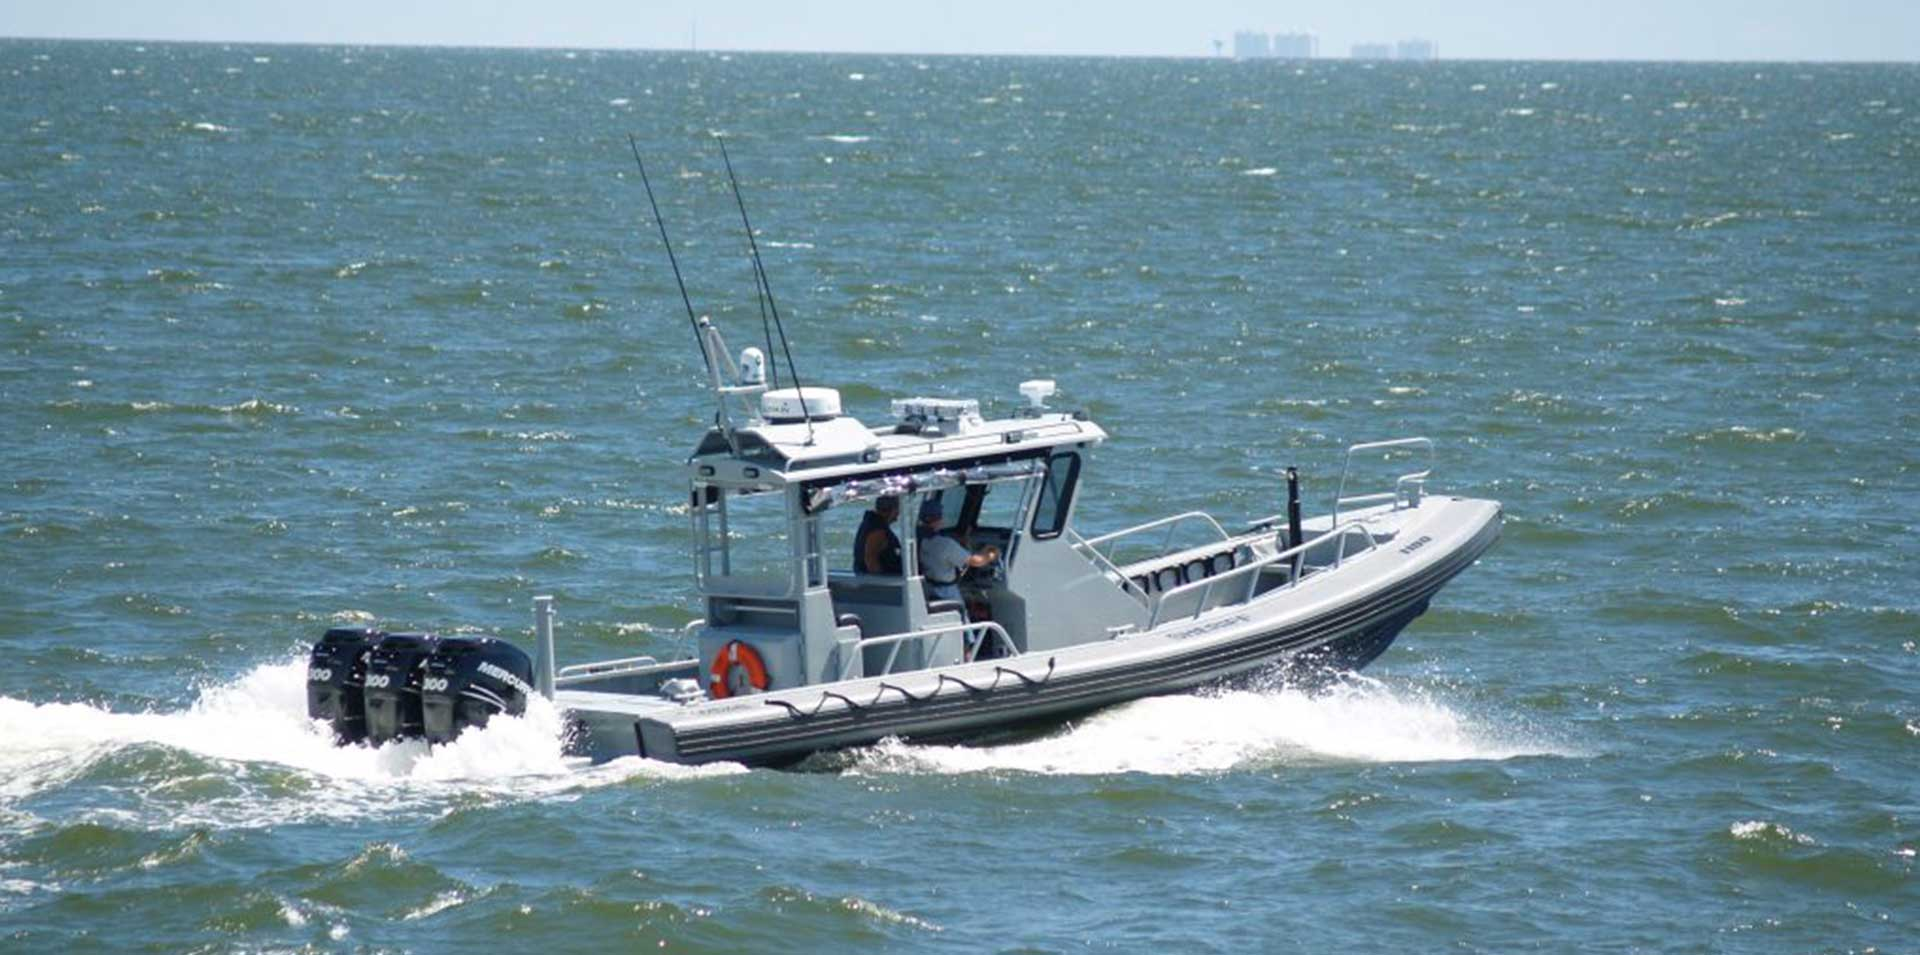 Silver Ships Ambar Series AM 1100 patrol boat with pilothouse and outboards